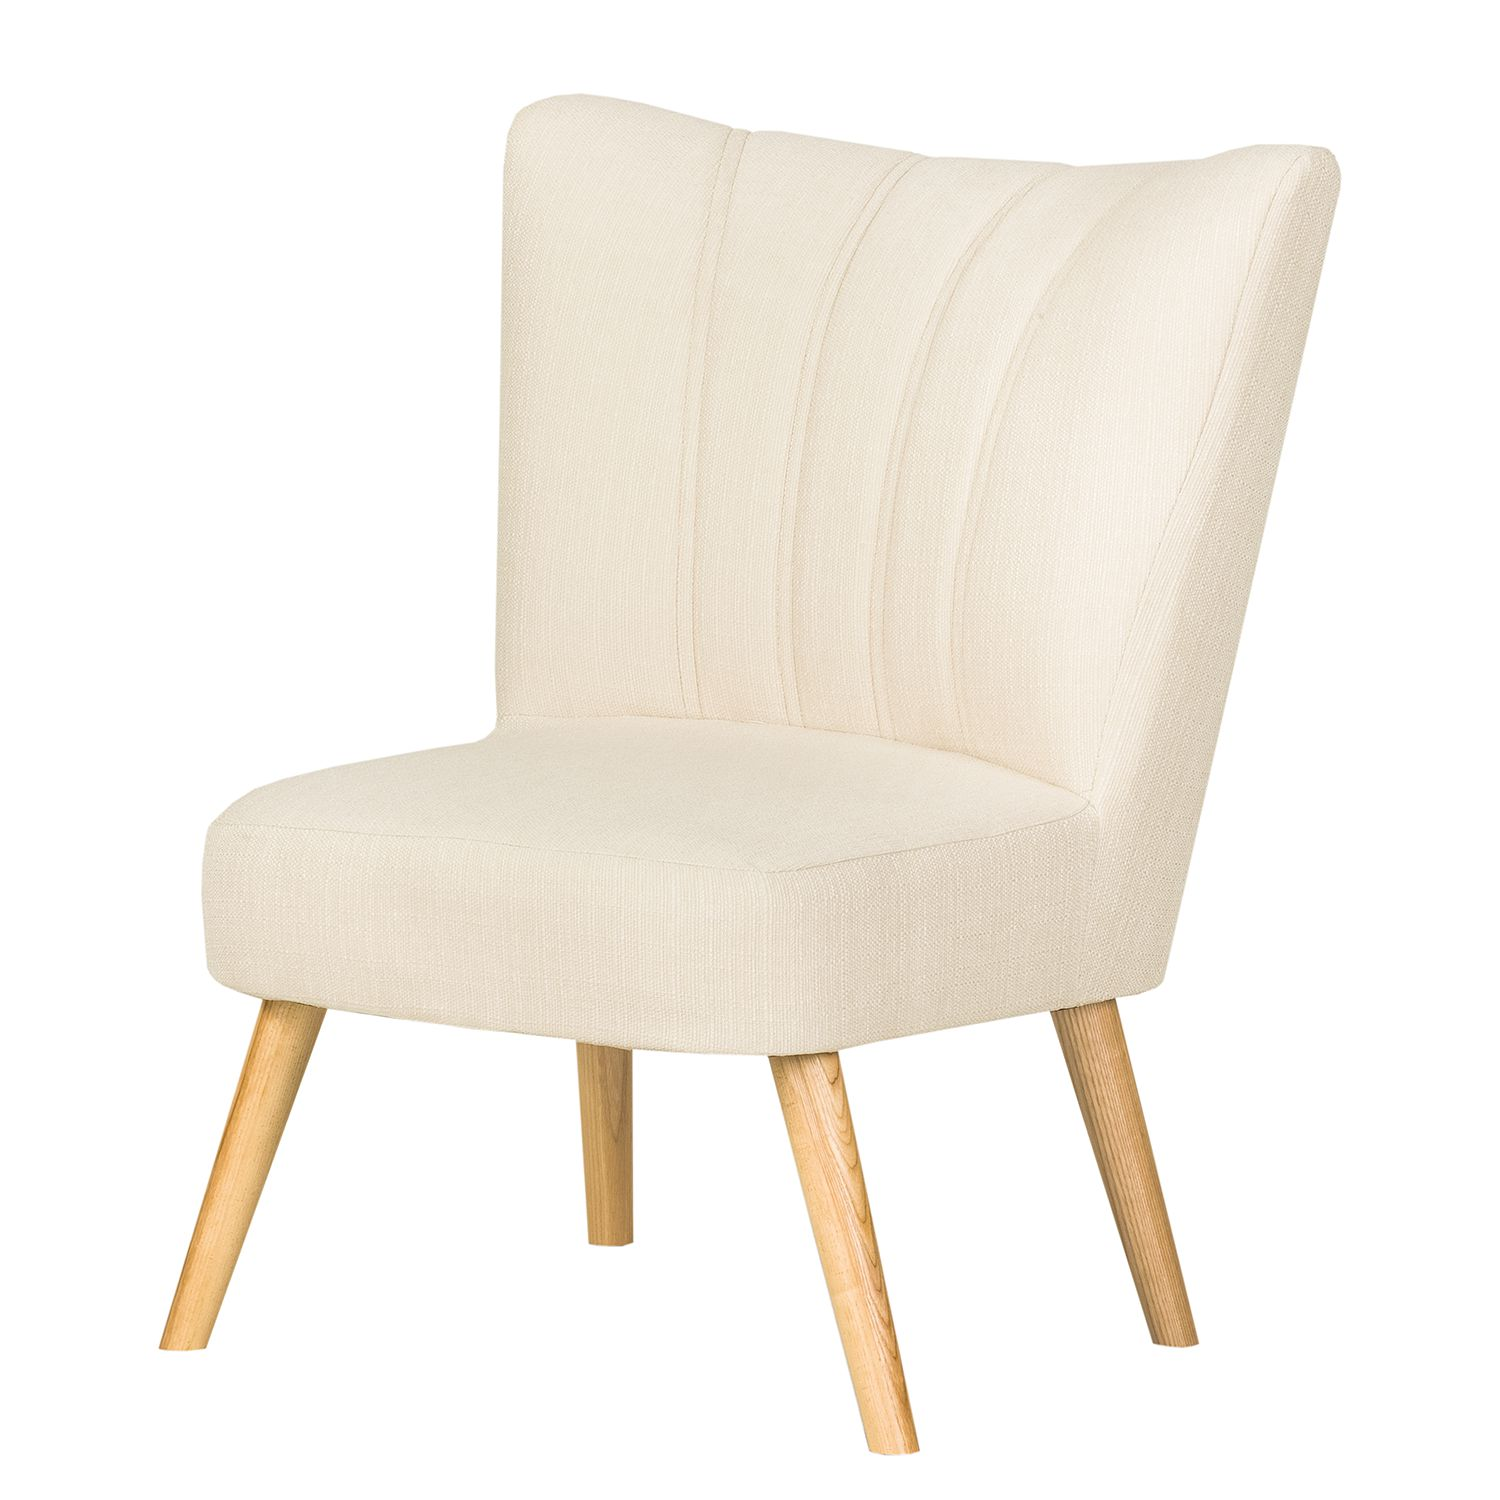 Fauteuil Oona I - Tissu Beige - Crème, kollected by Johanna